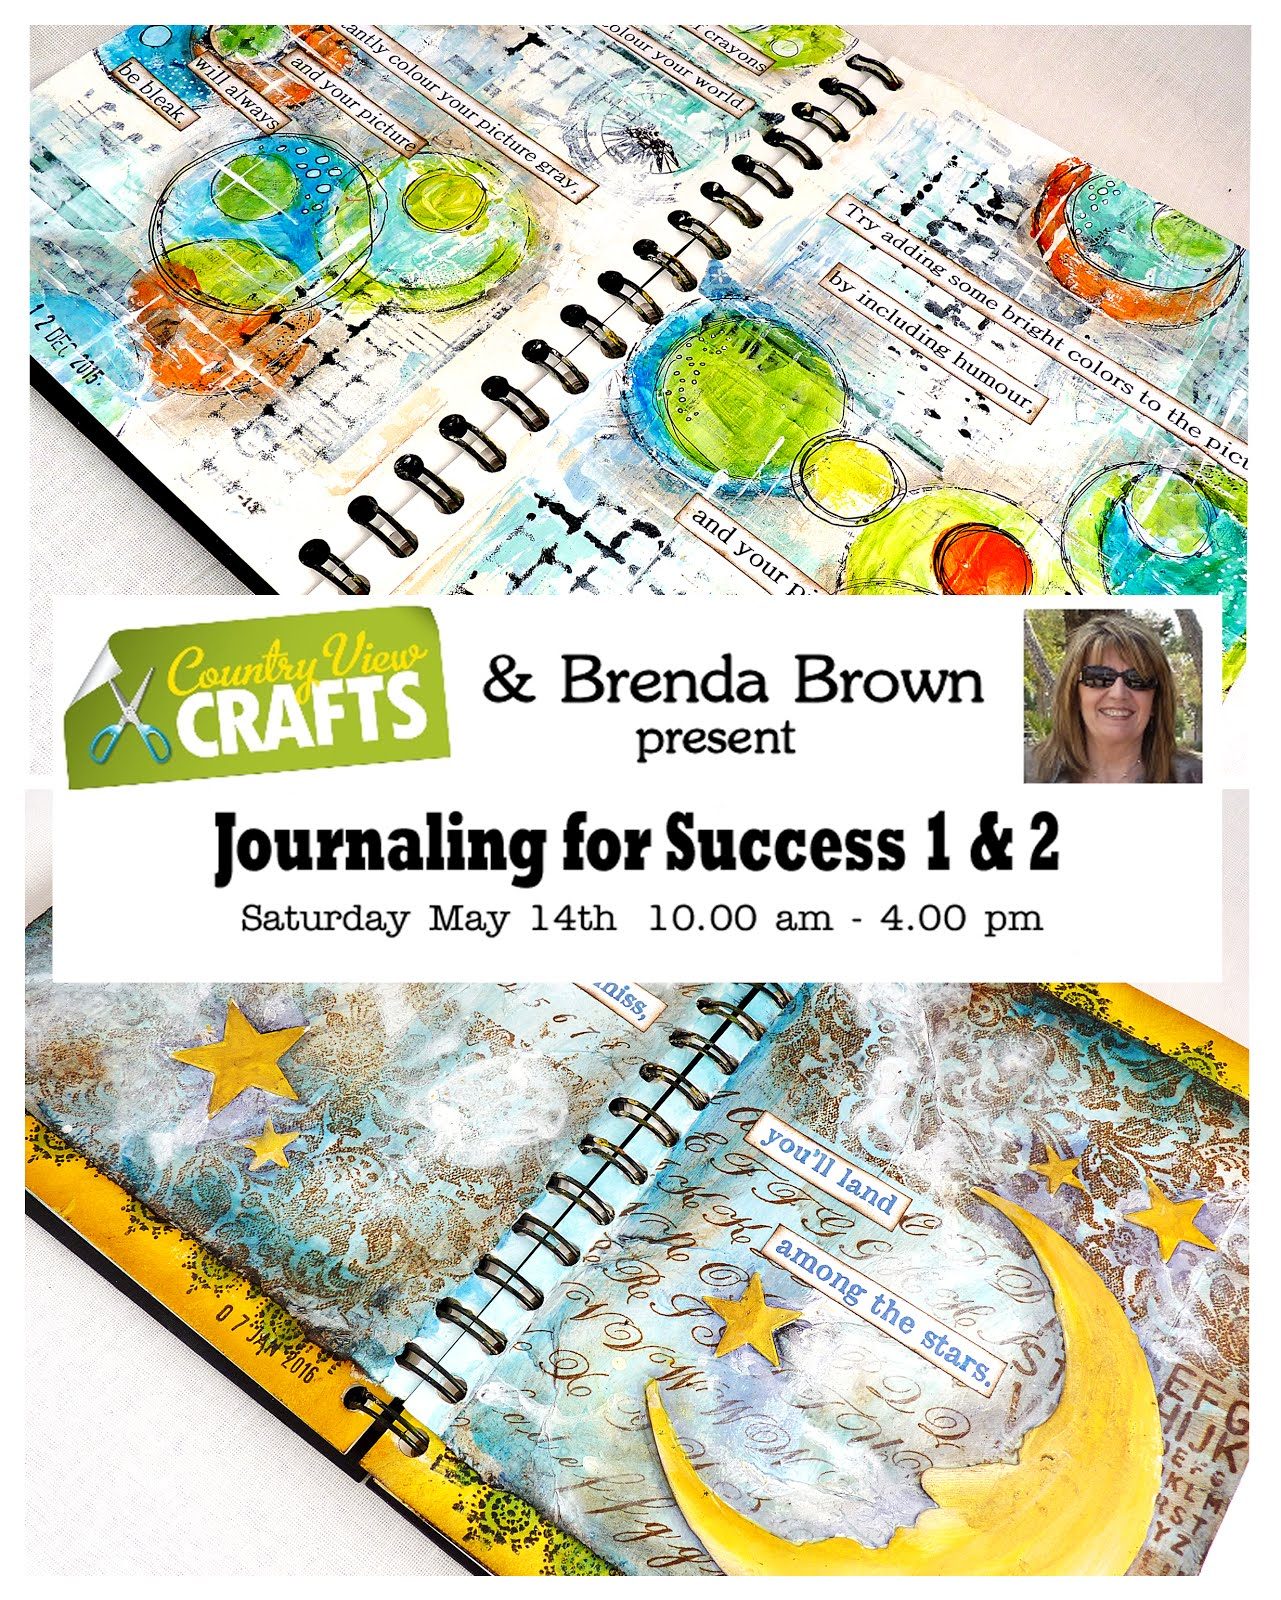 Country View Crafts Journaling for Success 1 & 2 May 14th 2016